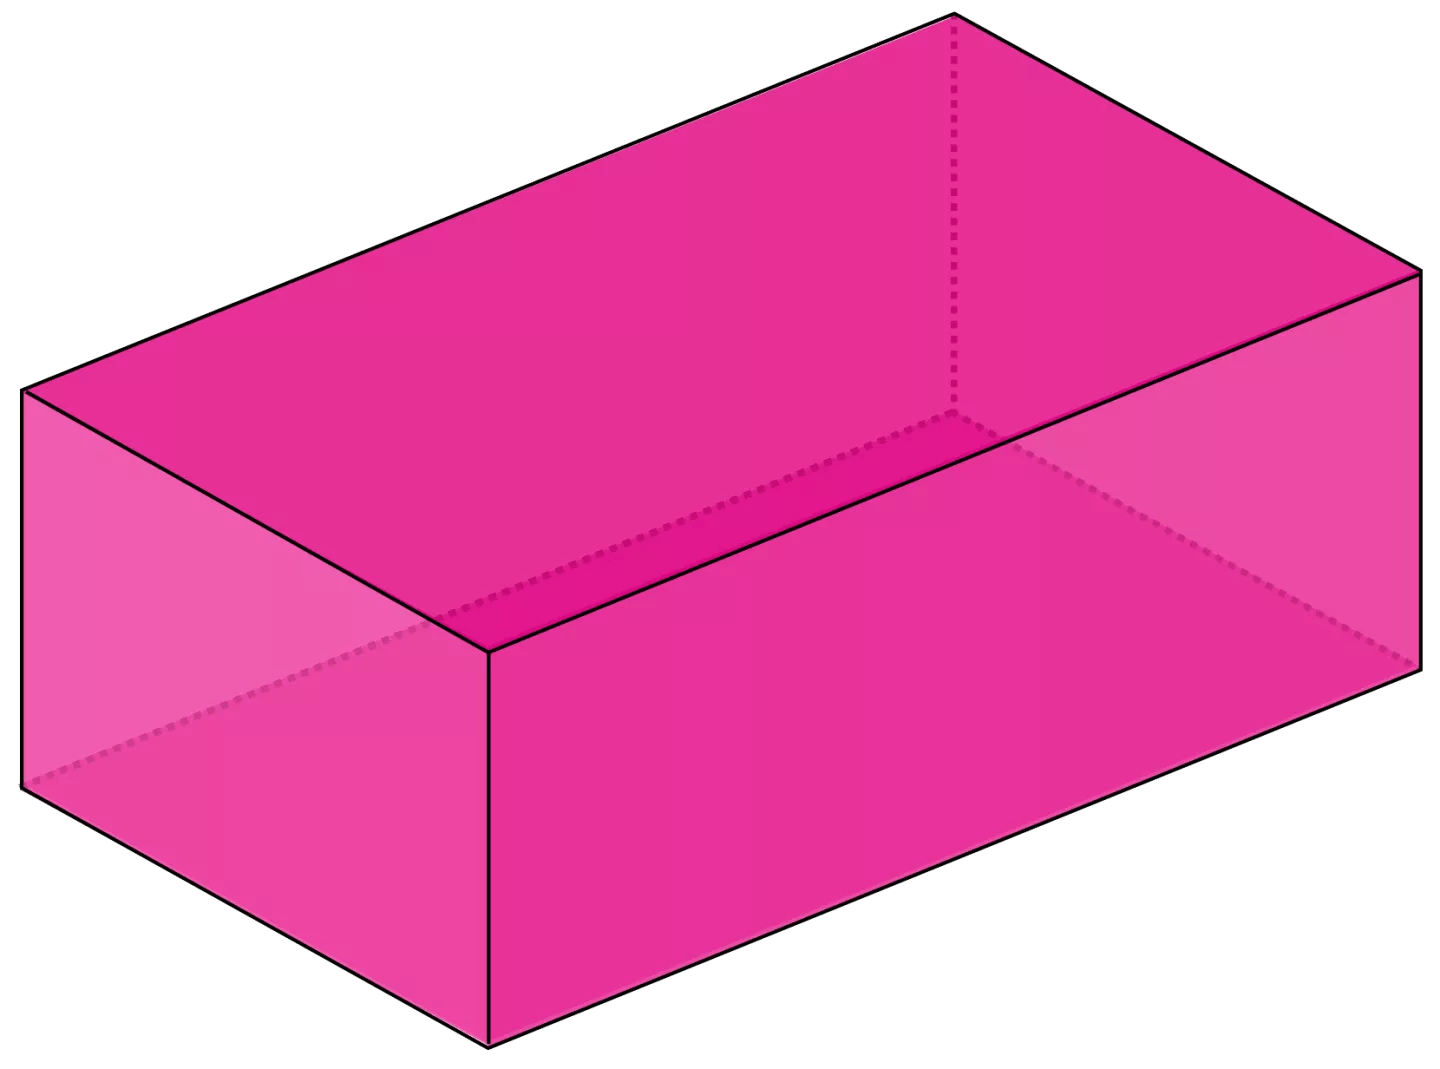 What Is A Cuboid